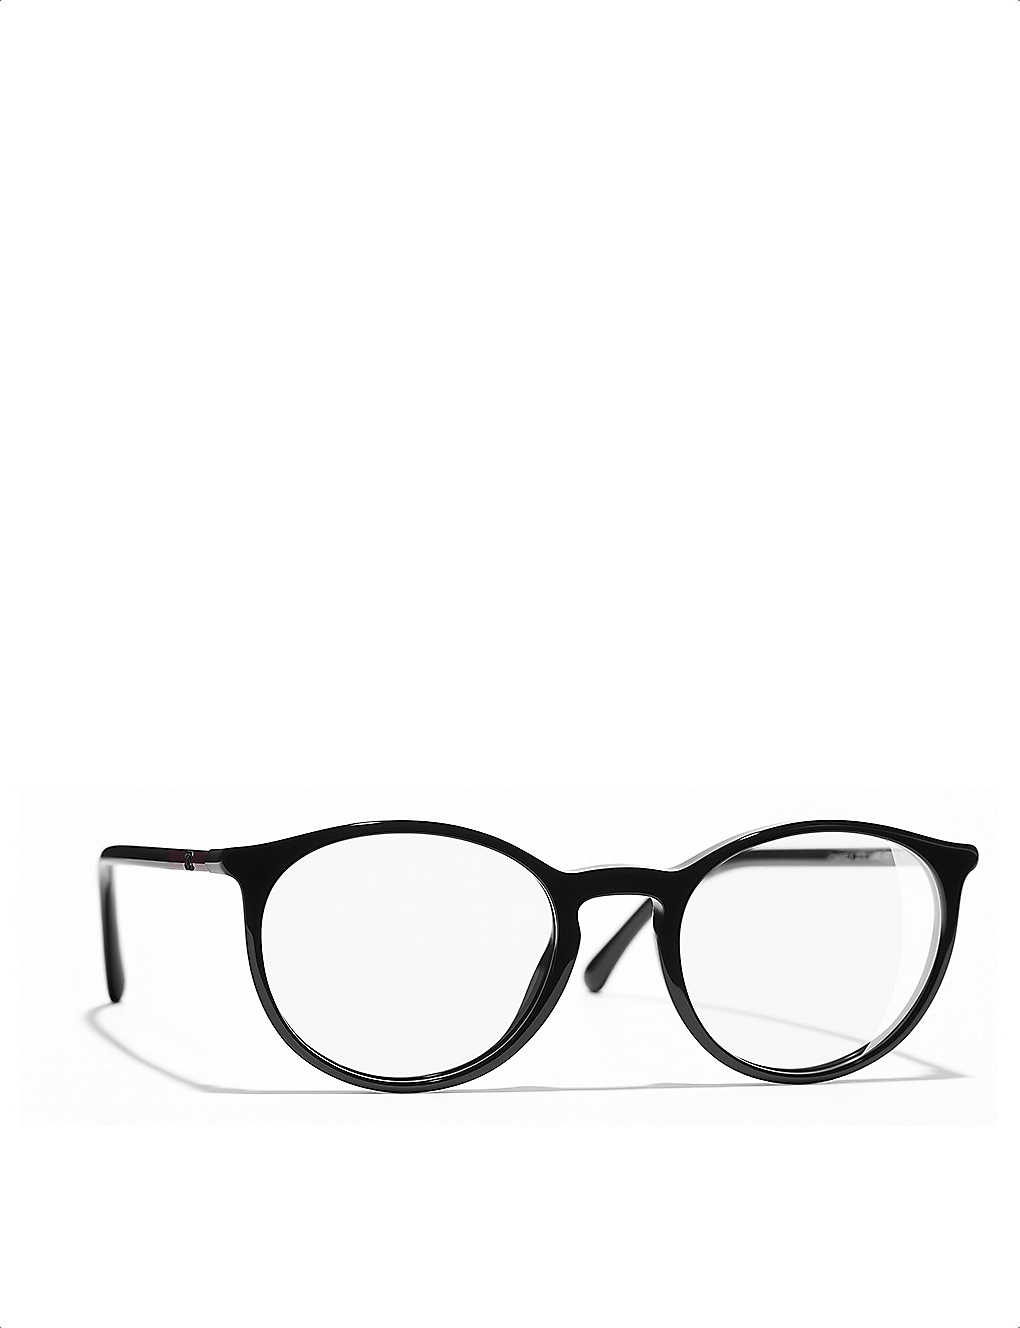 d125924c46a6 CHANEL - Round glasses